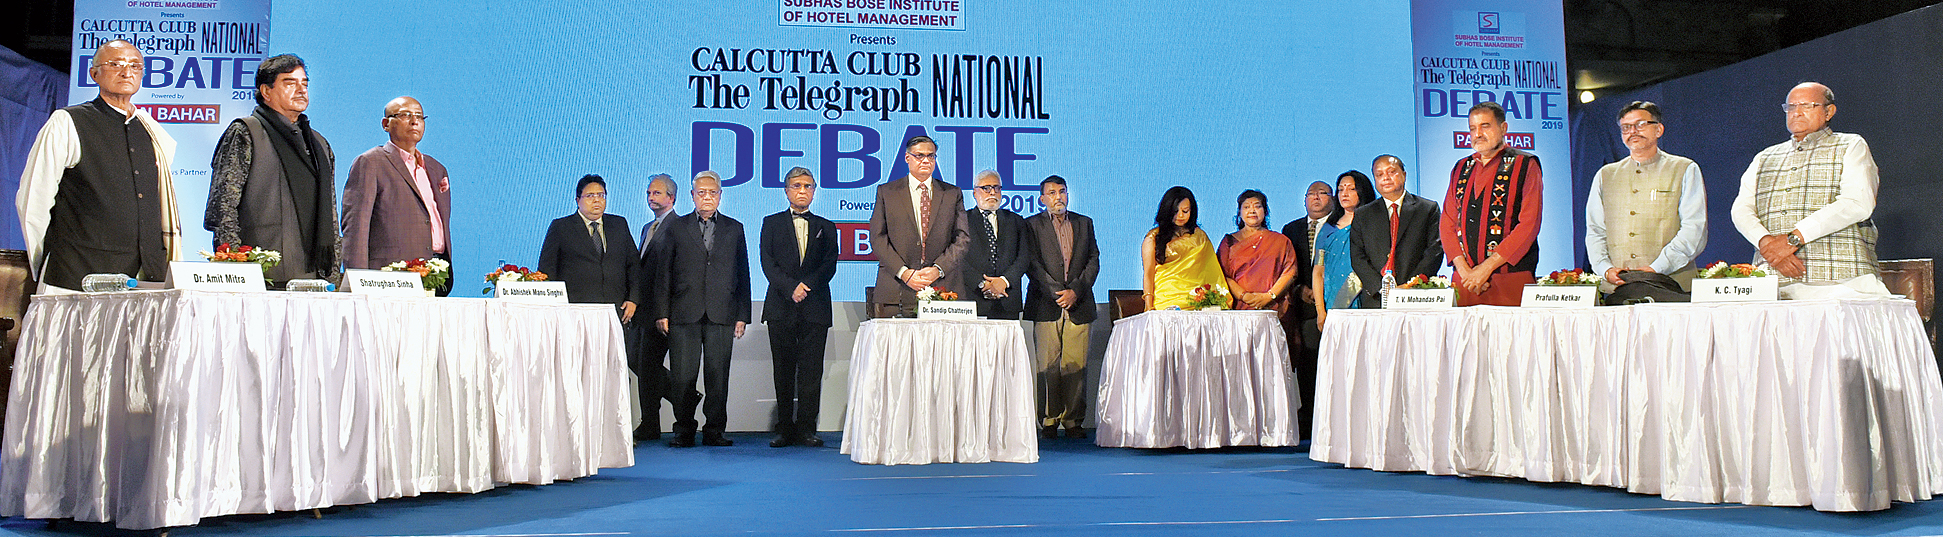 A minute's silence in memory of the troopers slain in Pulwama being observed at the start of the The Telegraph National Debate 2019 on the Calcutta Club lawns on Sunday evening.